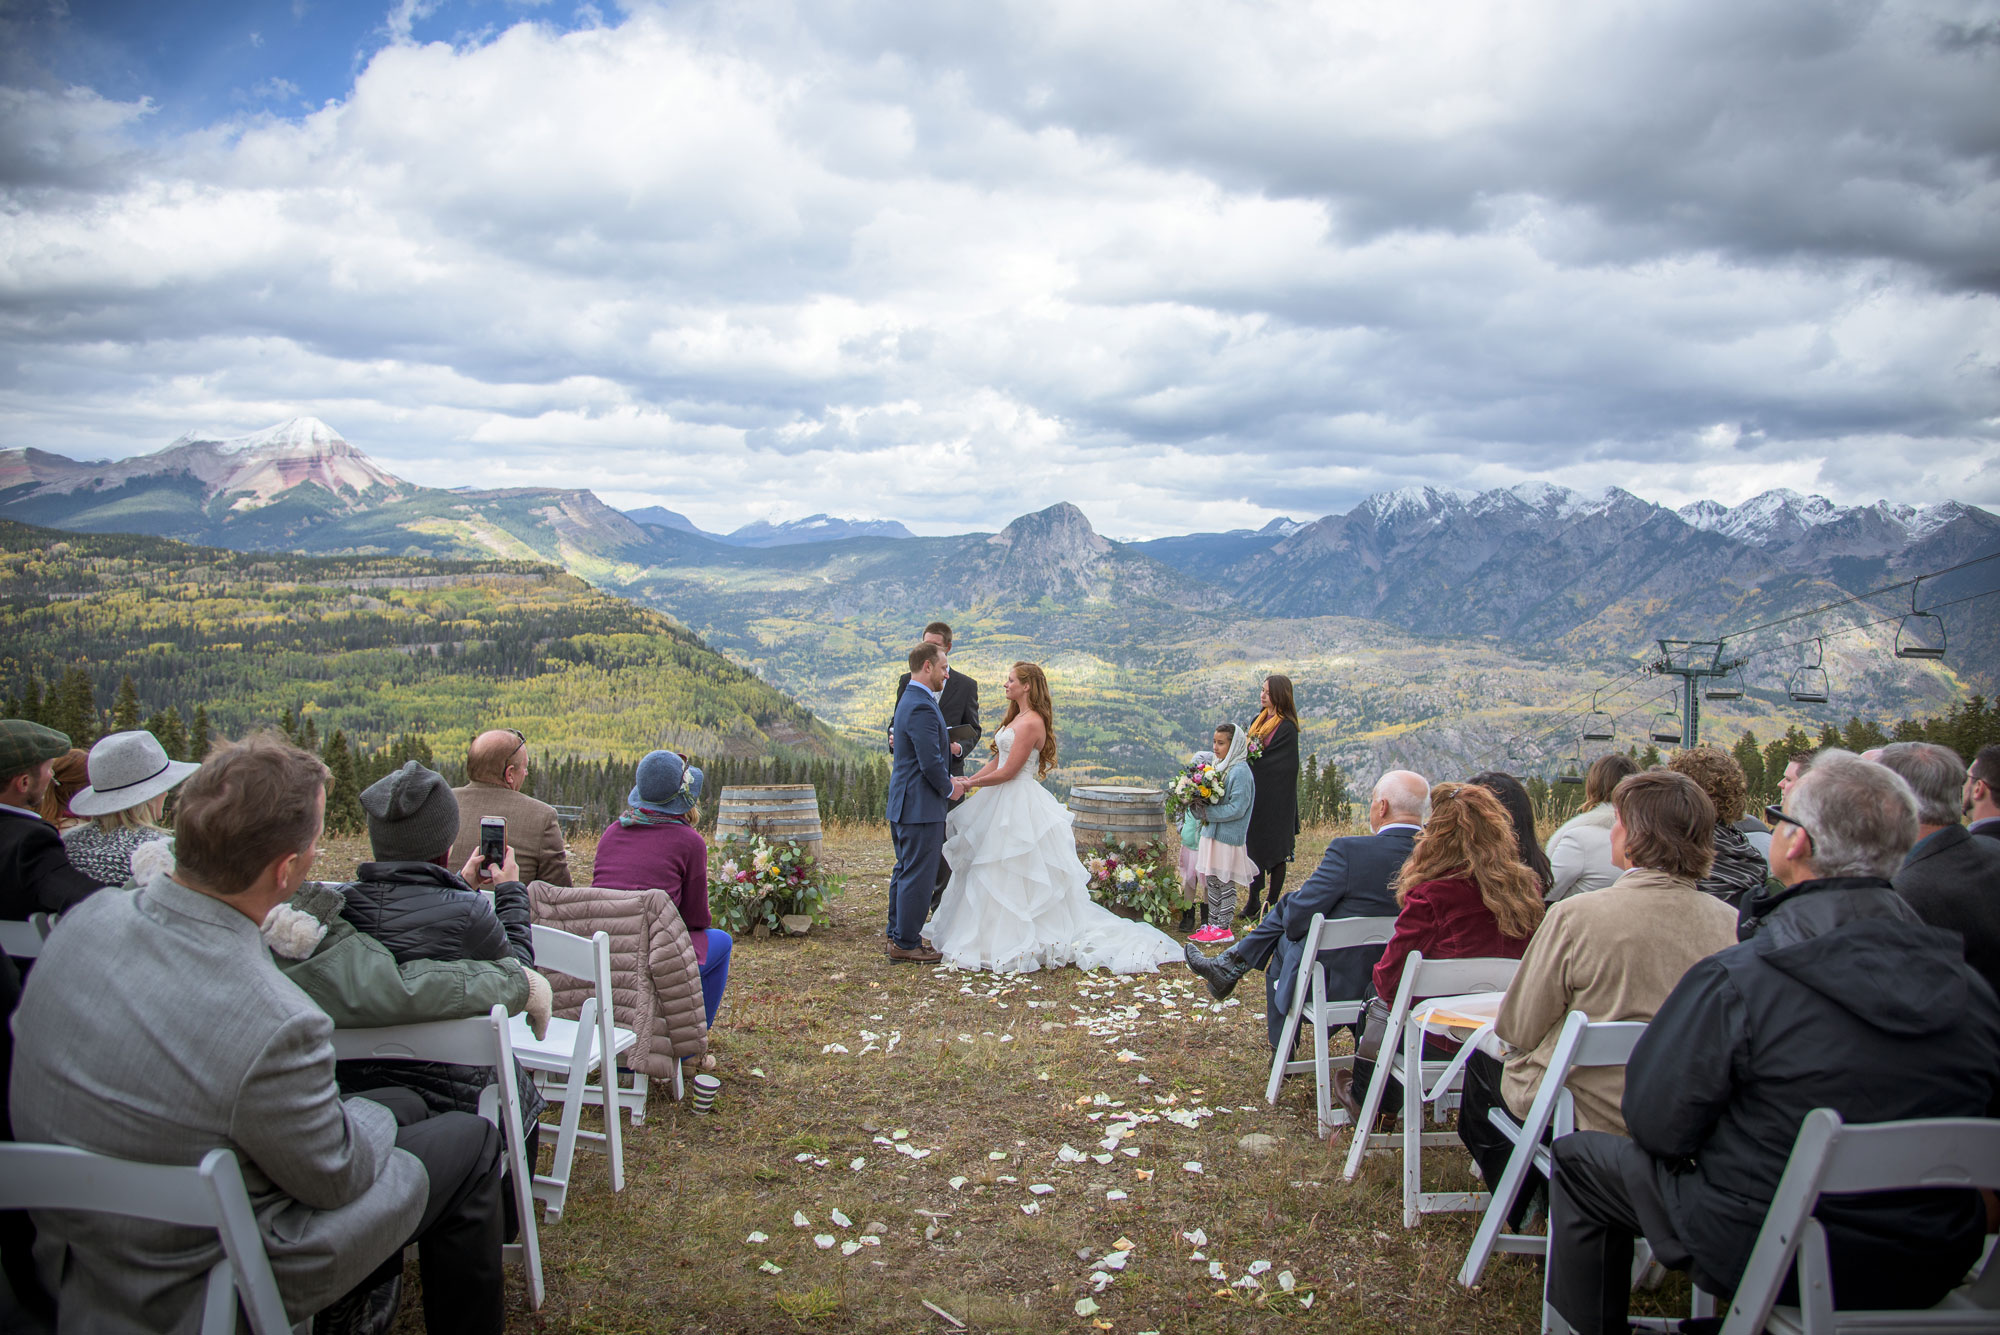 Ceremony at the top of lift one at Purgatory Resort, Durango, Colorado